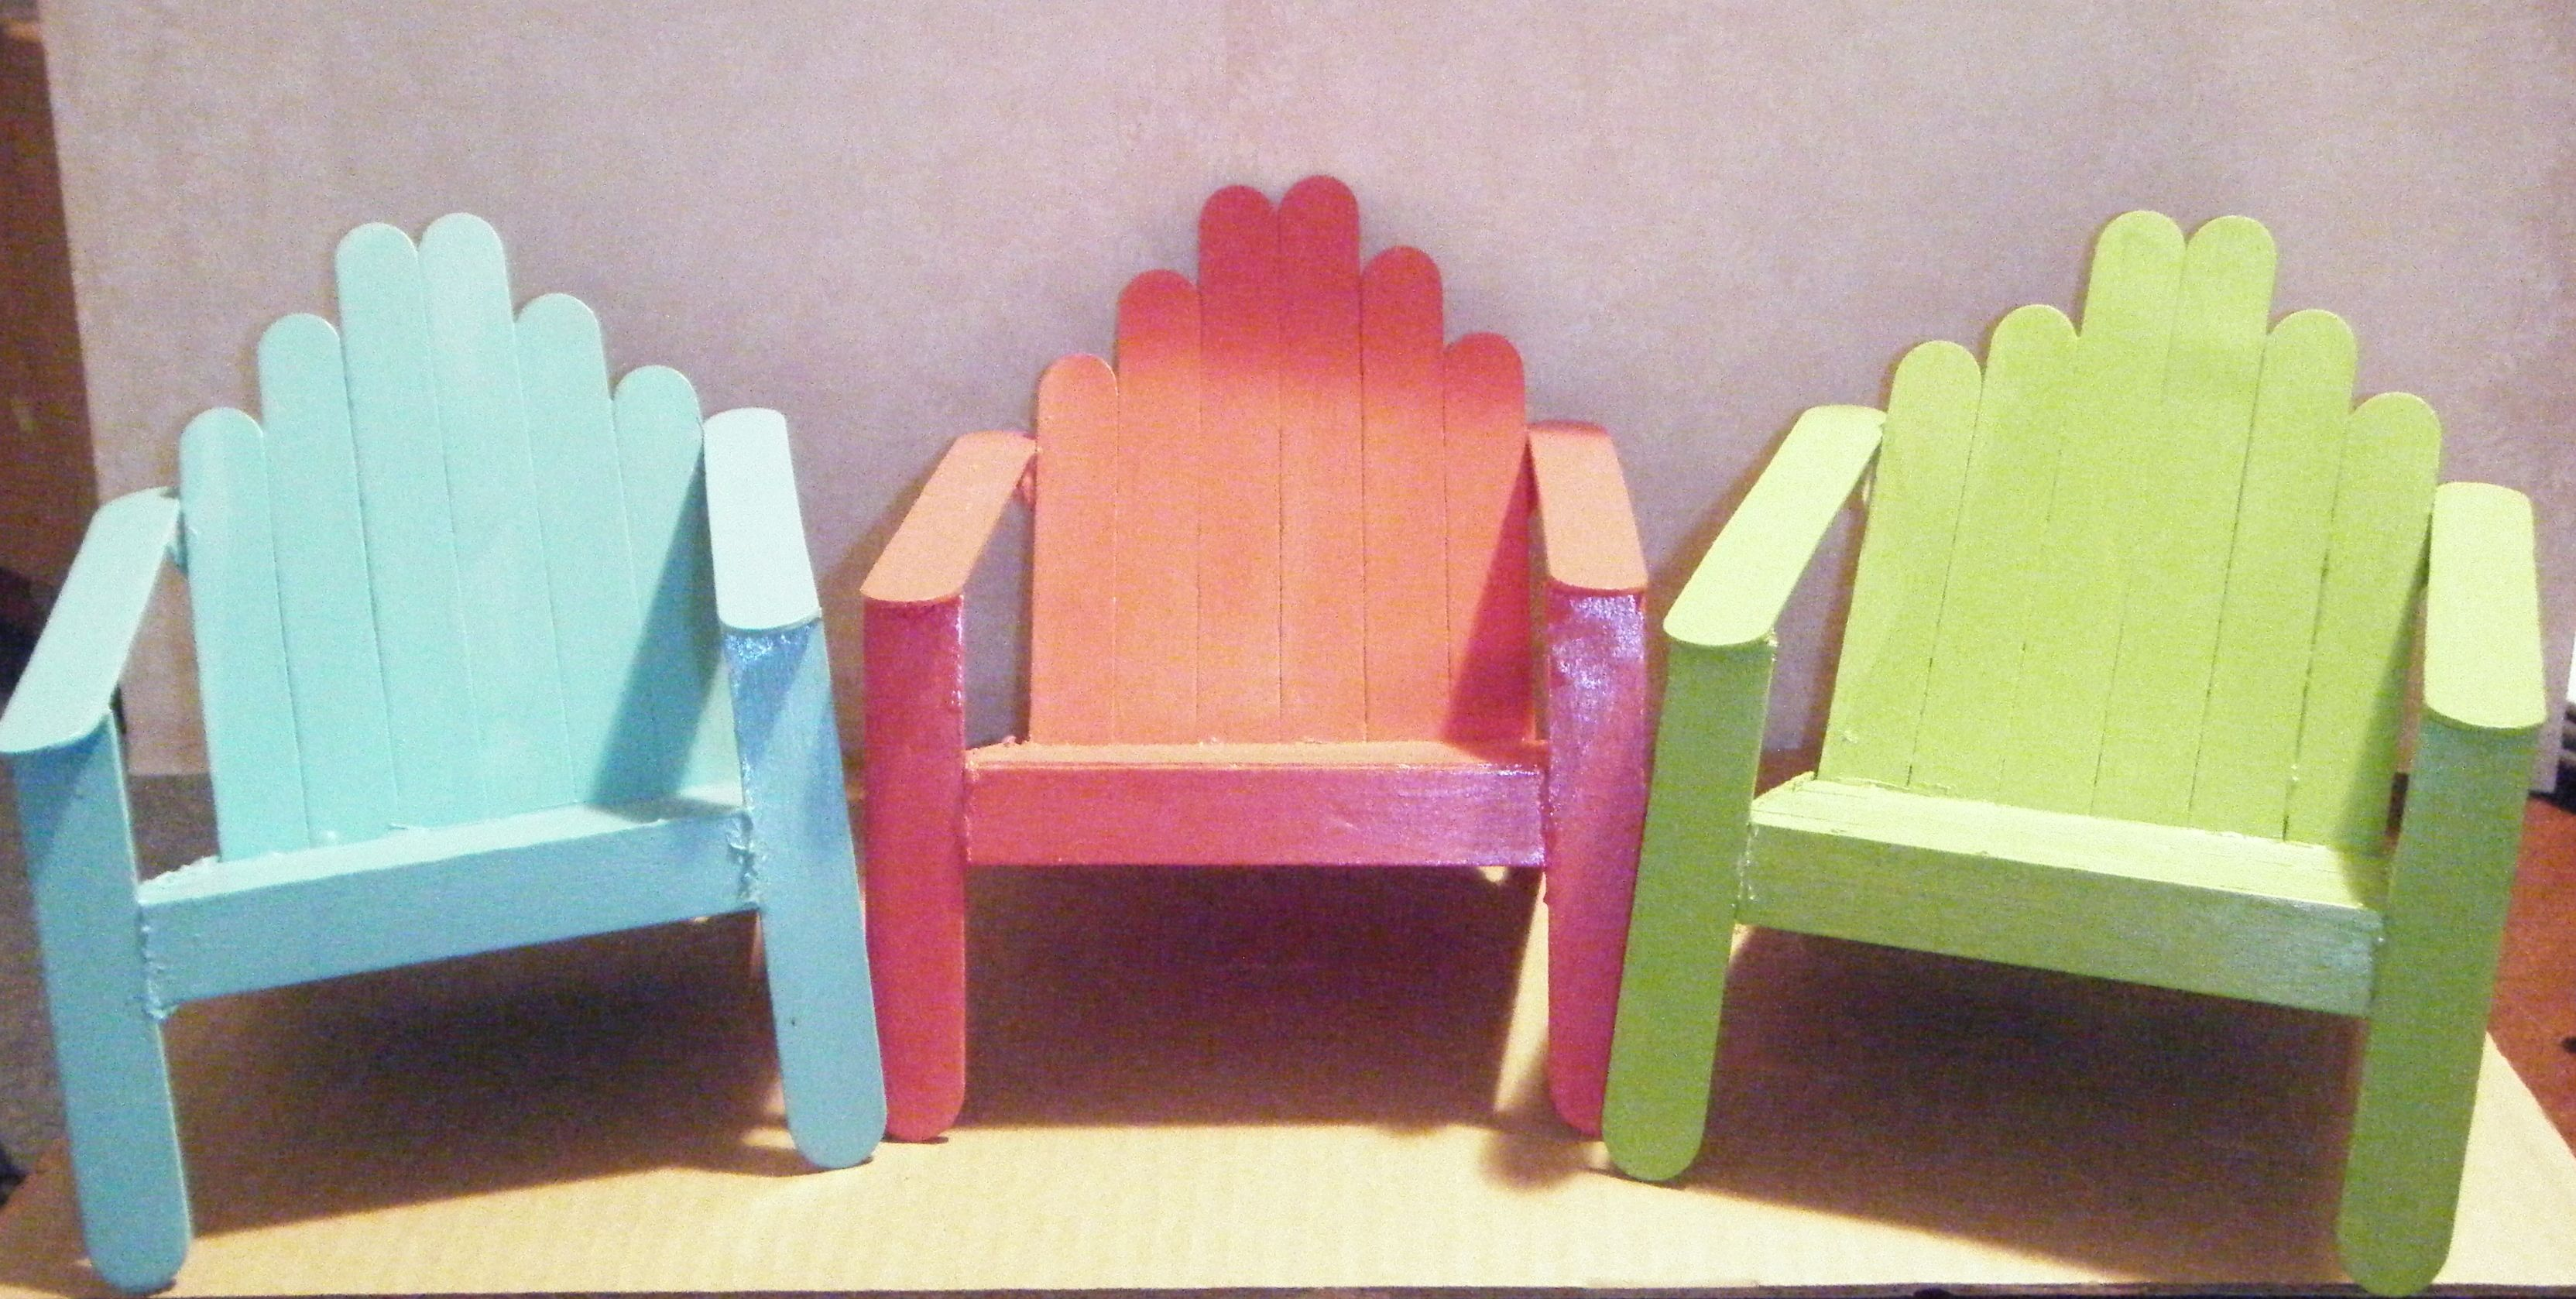 These Beach Chairs Are Made From Wide Popsicle Sticks. We Got The Idea From  My